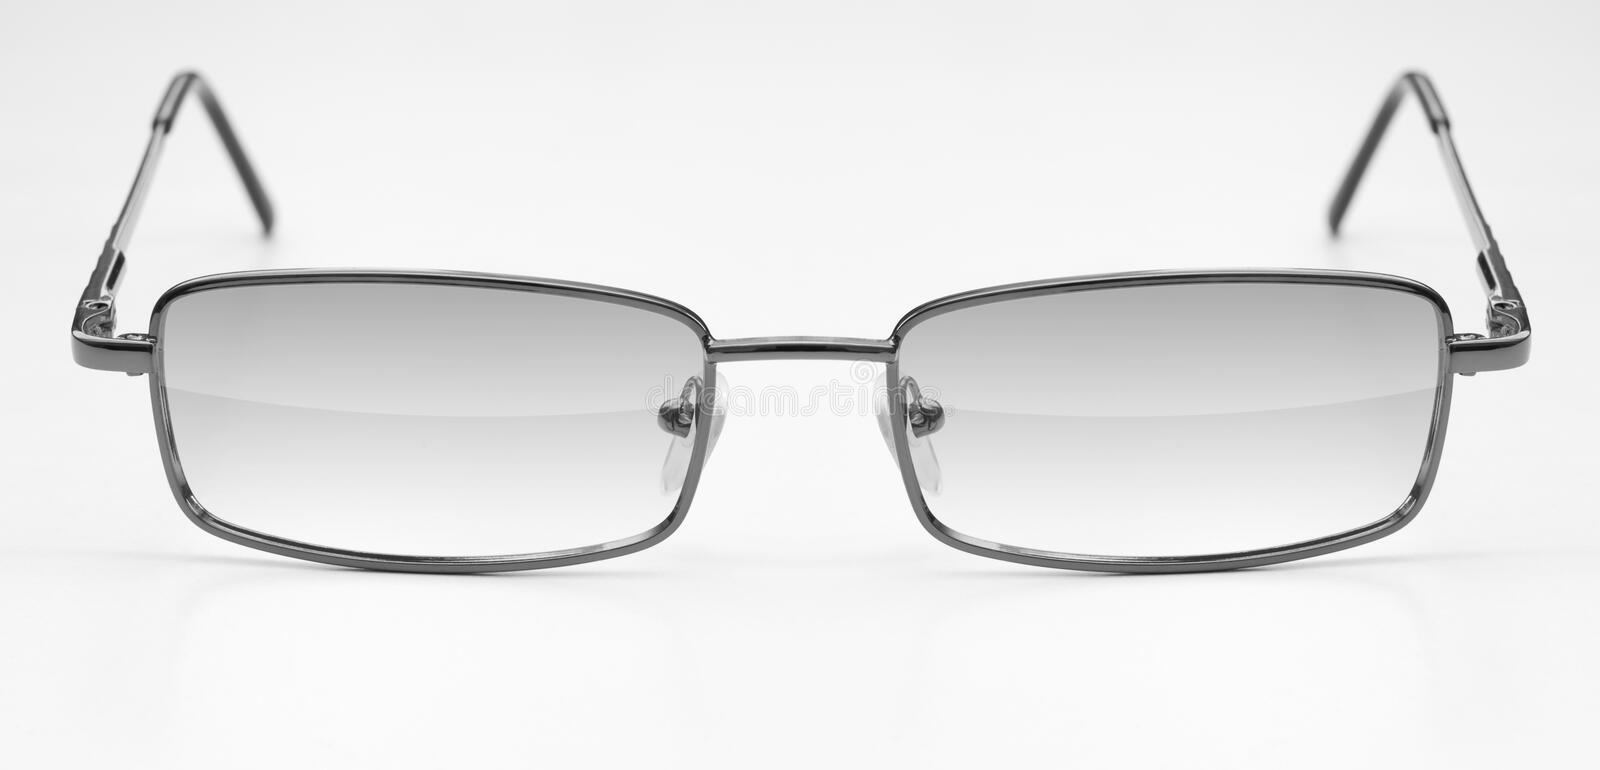 Classic glasses in metal frame royalty free stock photo